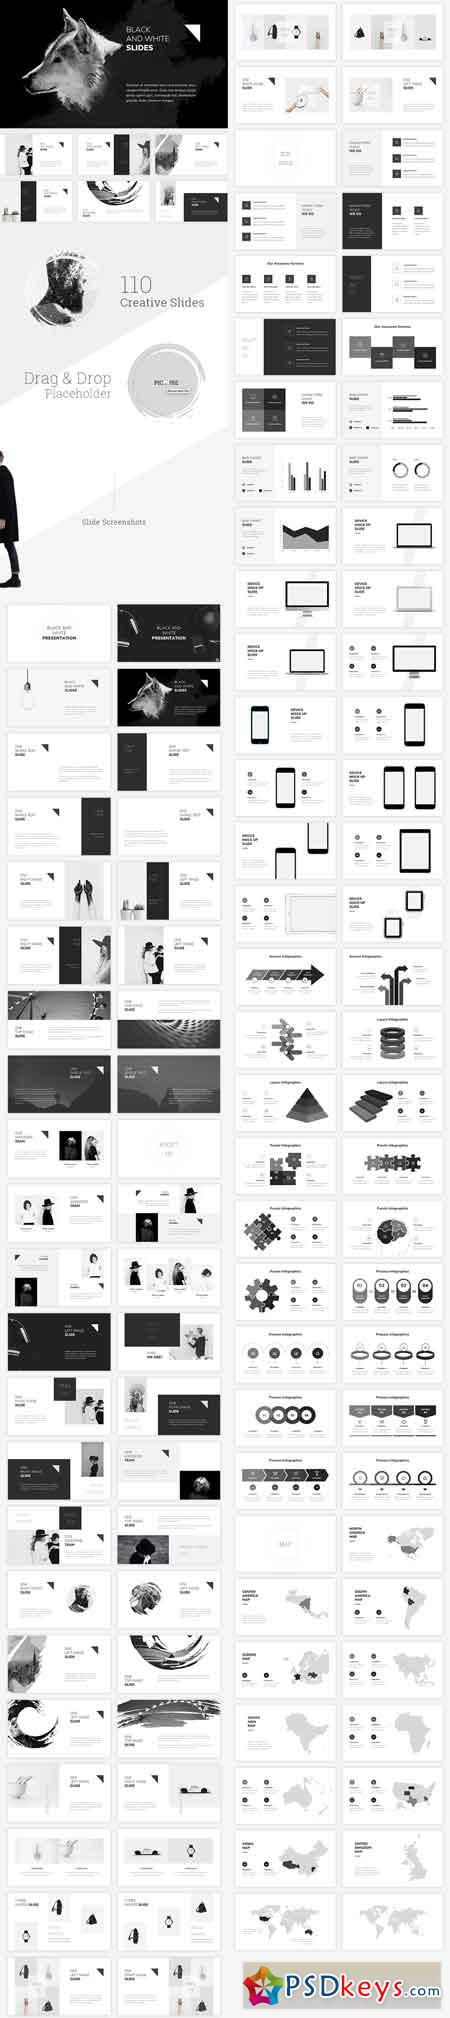 Black and white powerpoint template 20006597 free download black and white powerpoint template 20006597 toneelgroepblik Images